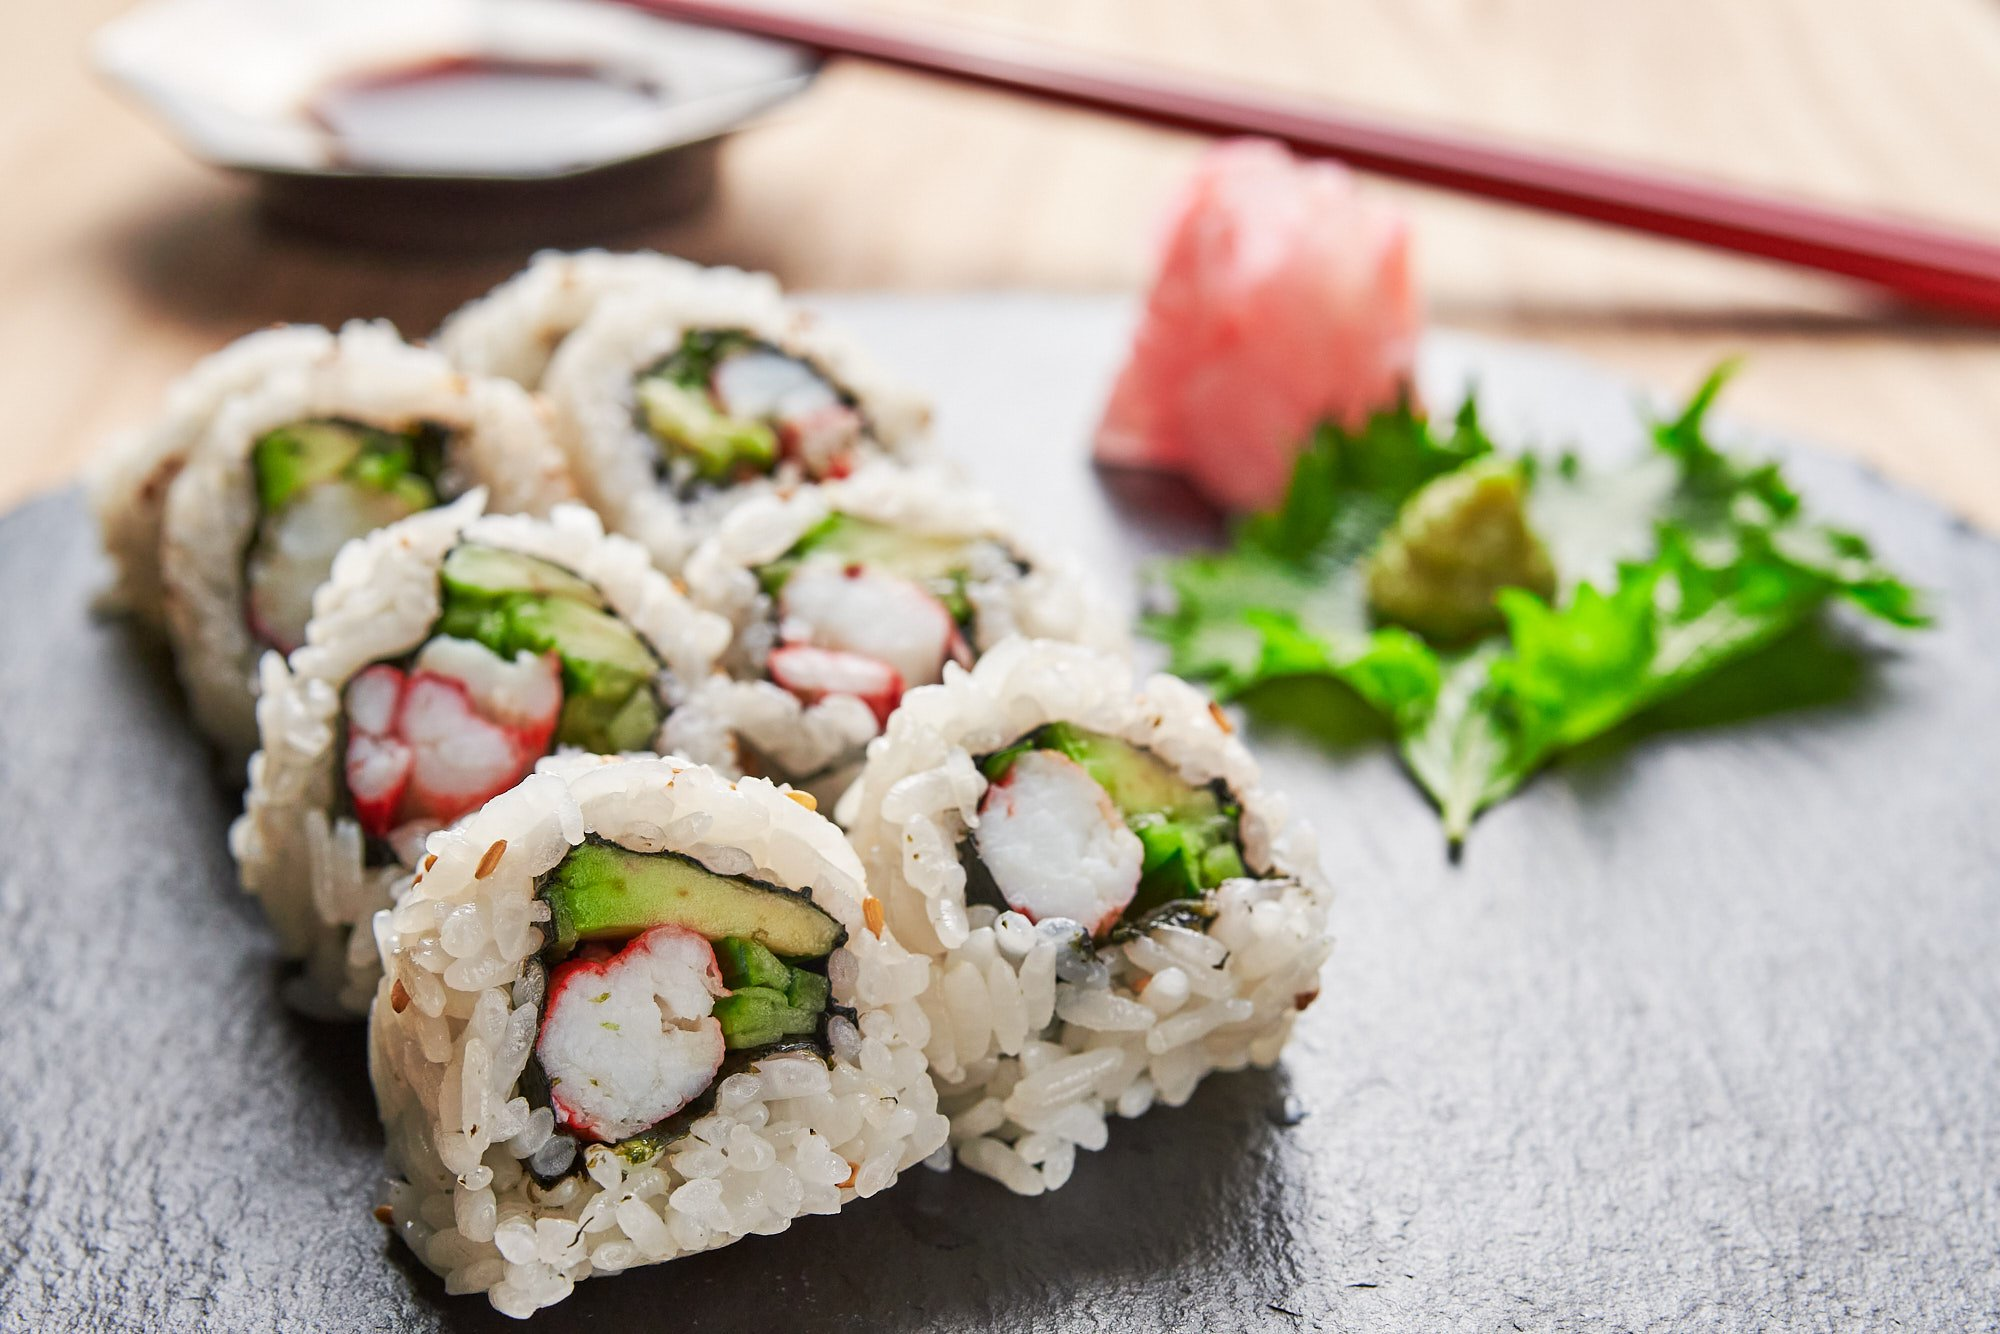 California rolls stuffed with avocado, king crab, and cucumber.